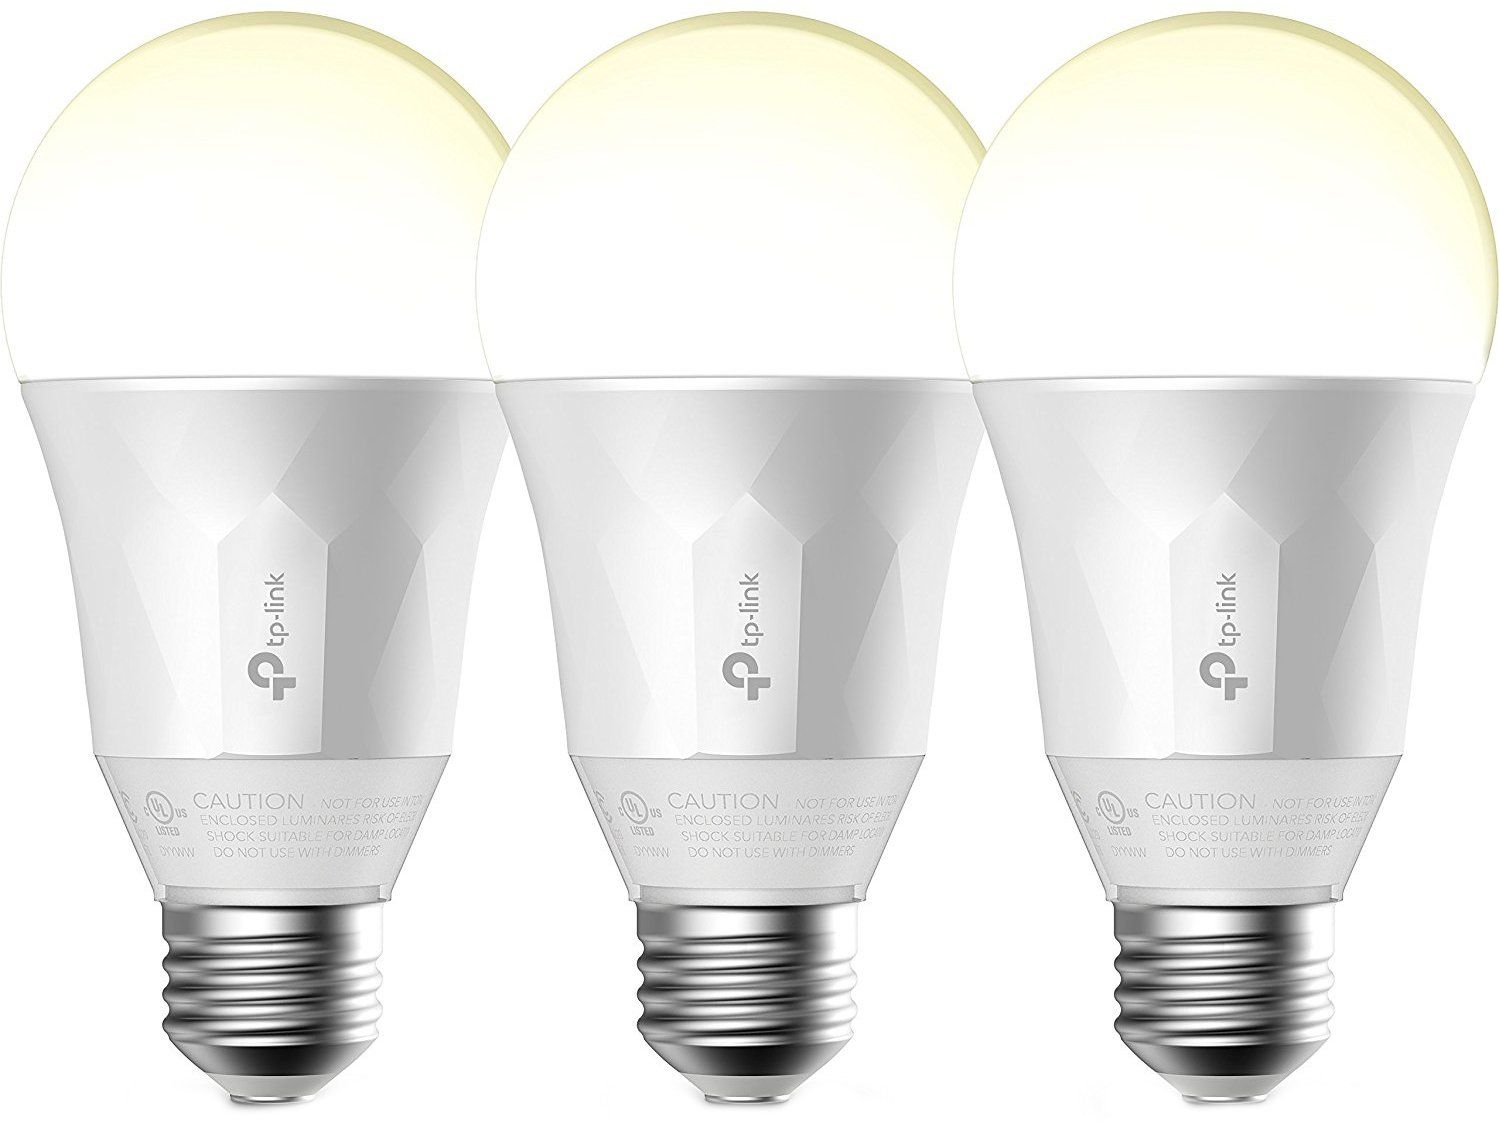 Led Lampen E27 10 Watt Best Smart Led Light Bulbs That Work With Google Home Android